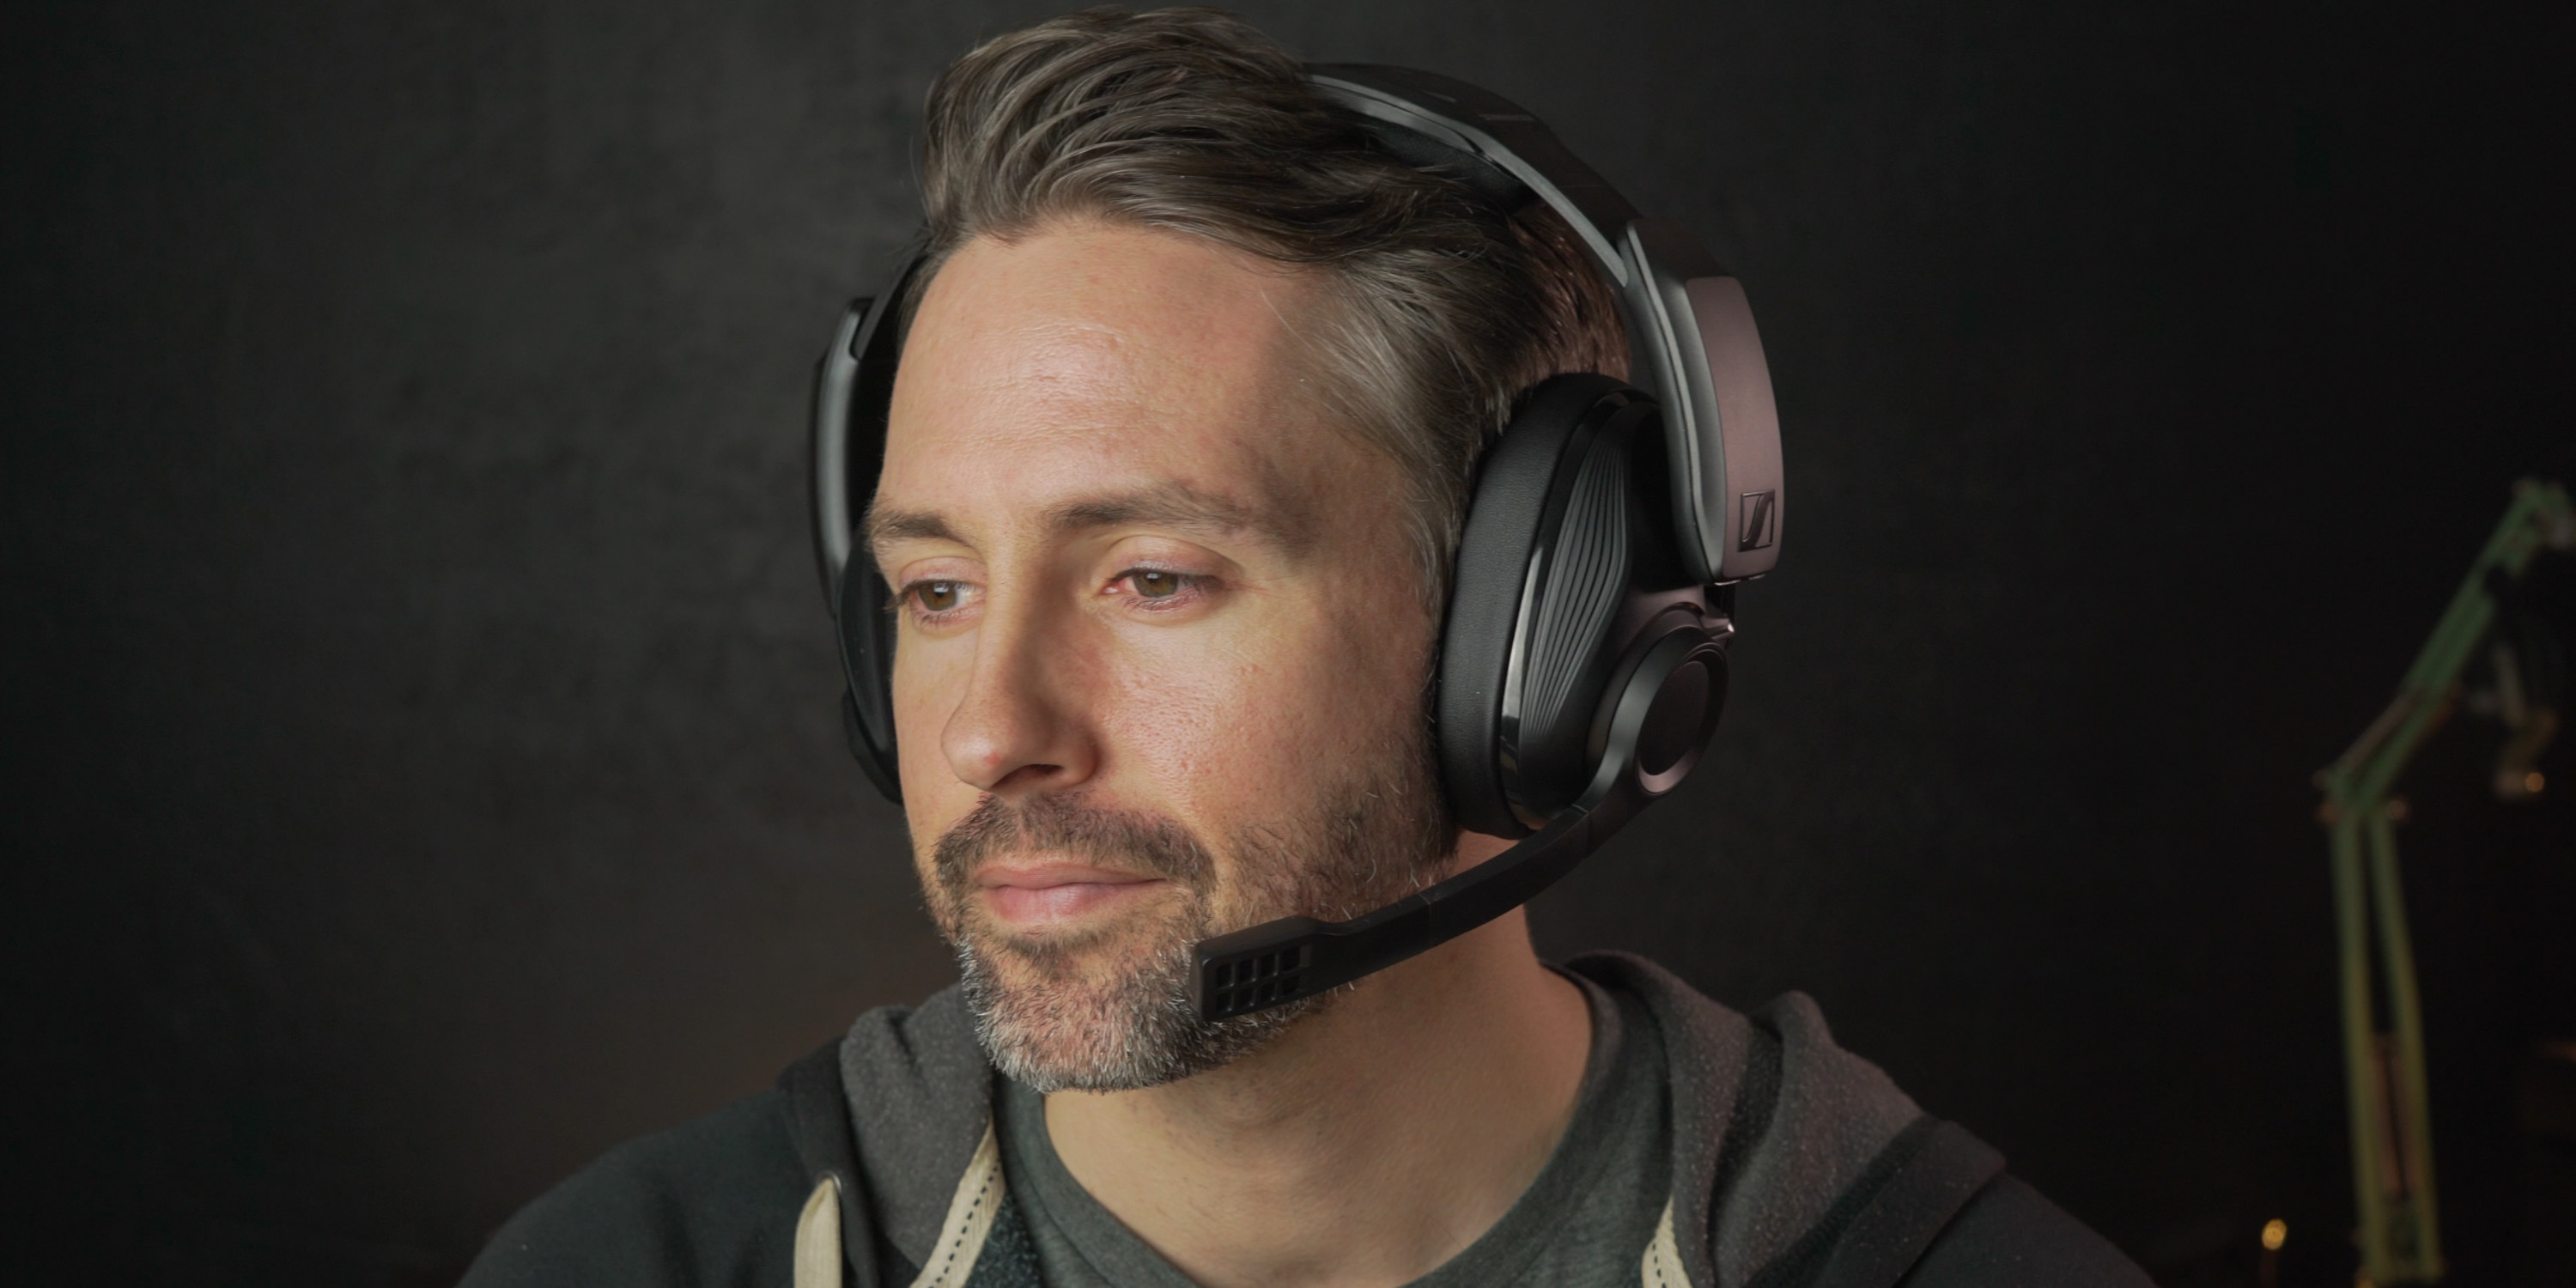 Wearing the Sennheiser GSP 670